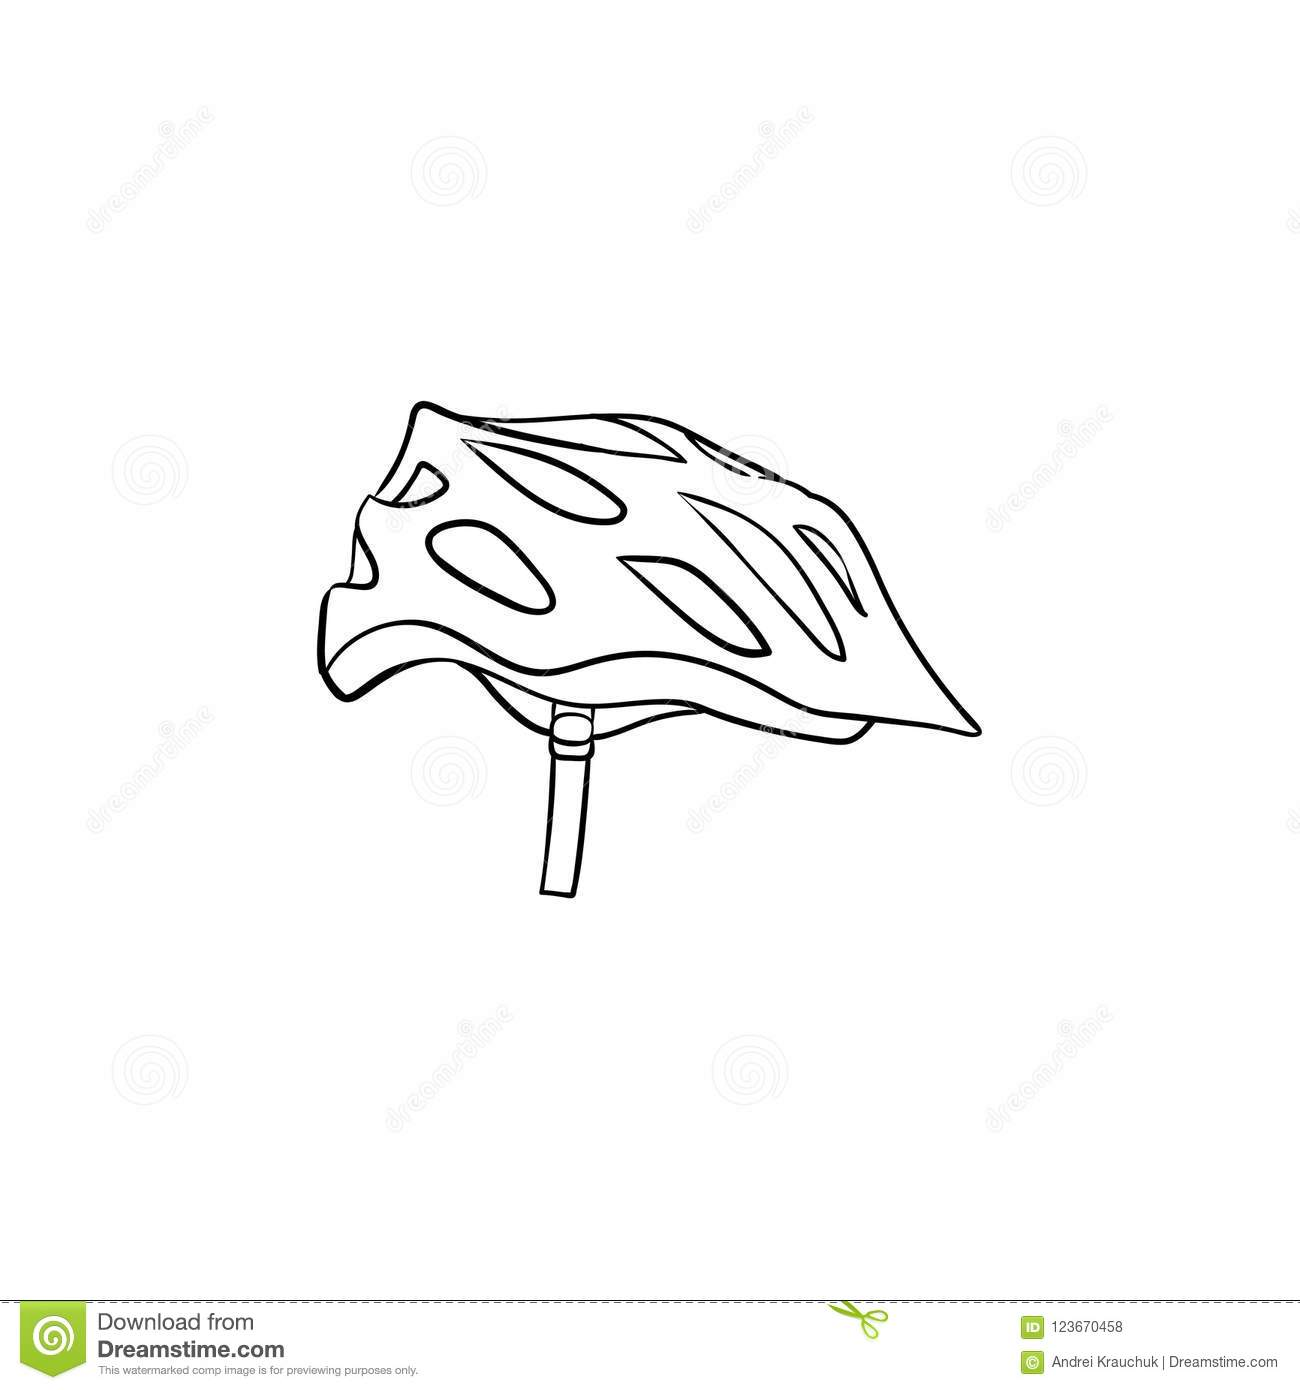 Bicycle Helmet Hand Drawn Outline Doodle Icon Stock Vector